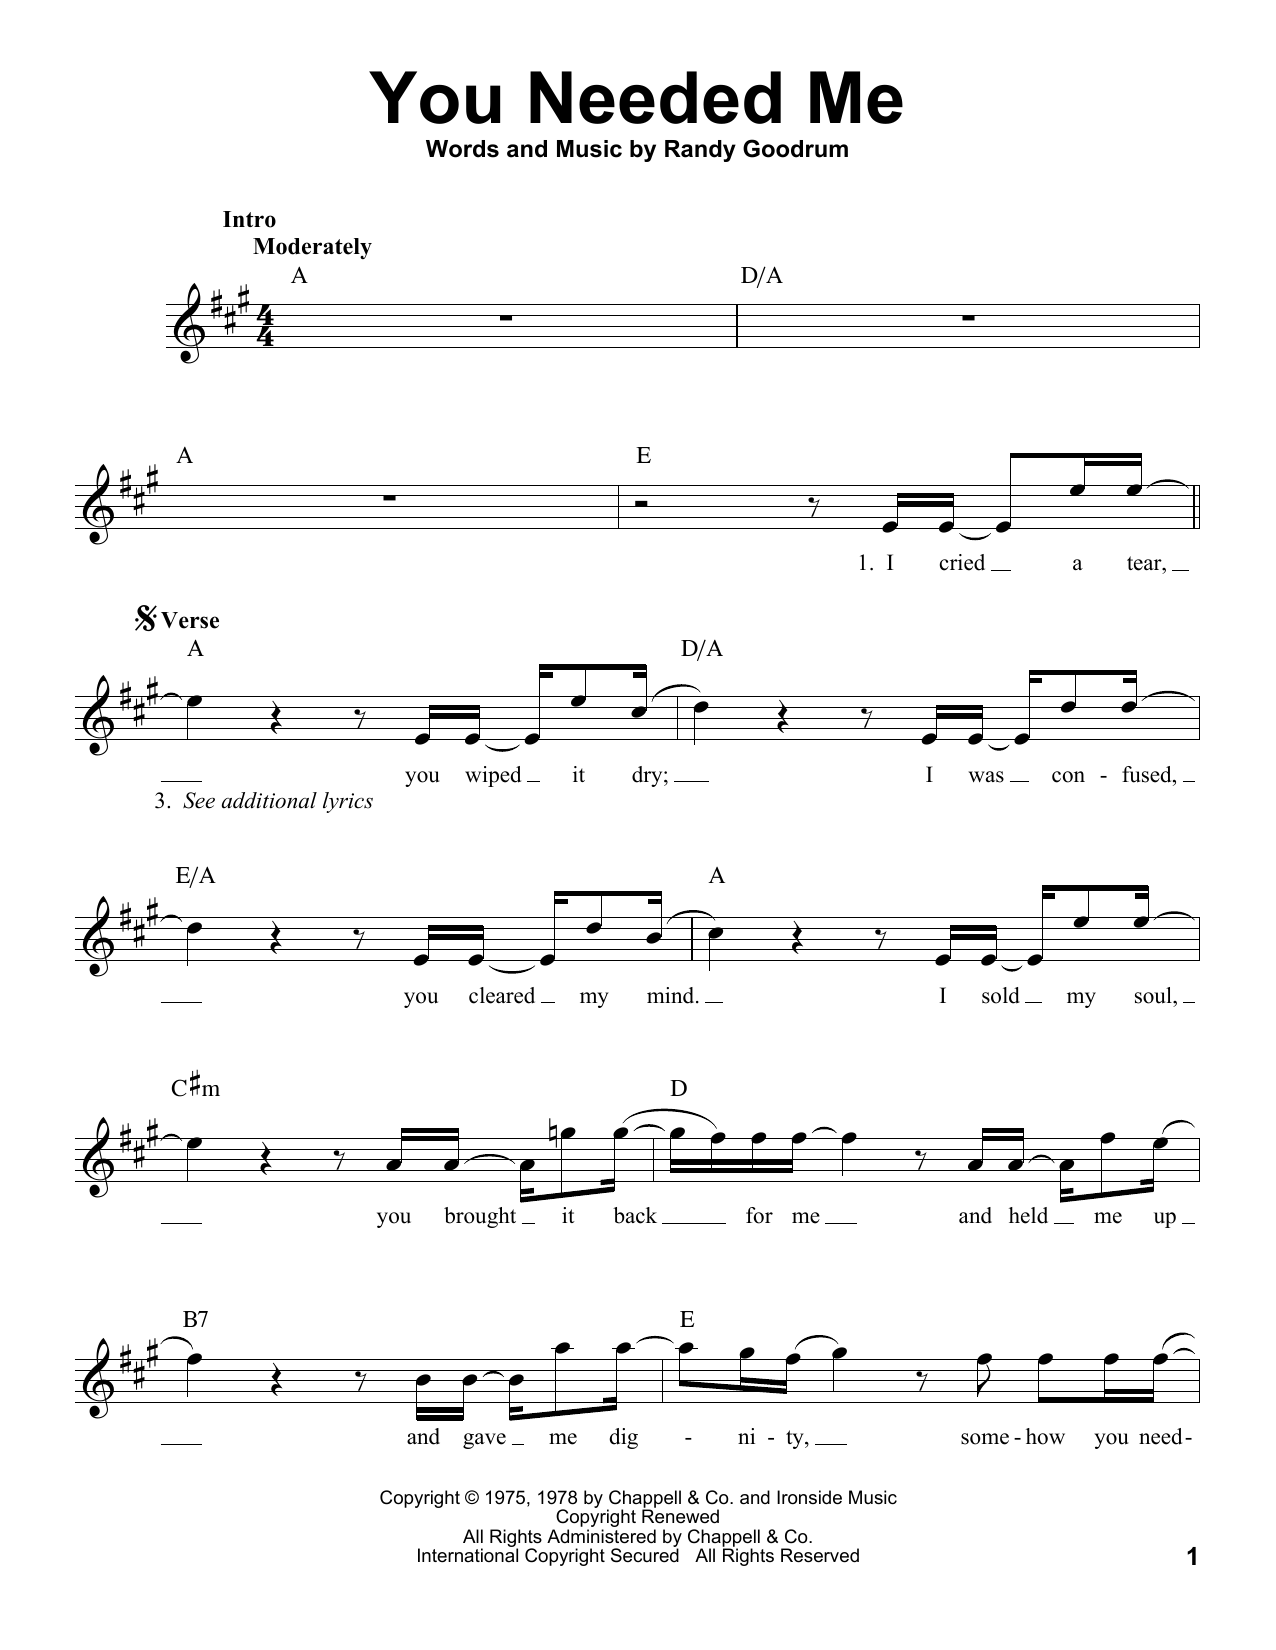 You Needed Me Sheet Music Notes Anne Murray Chords Download